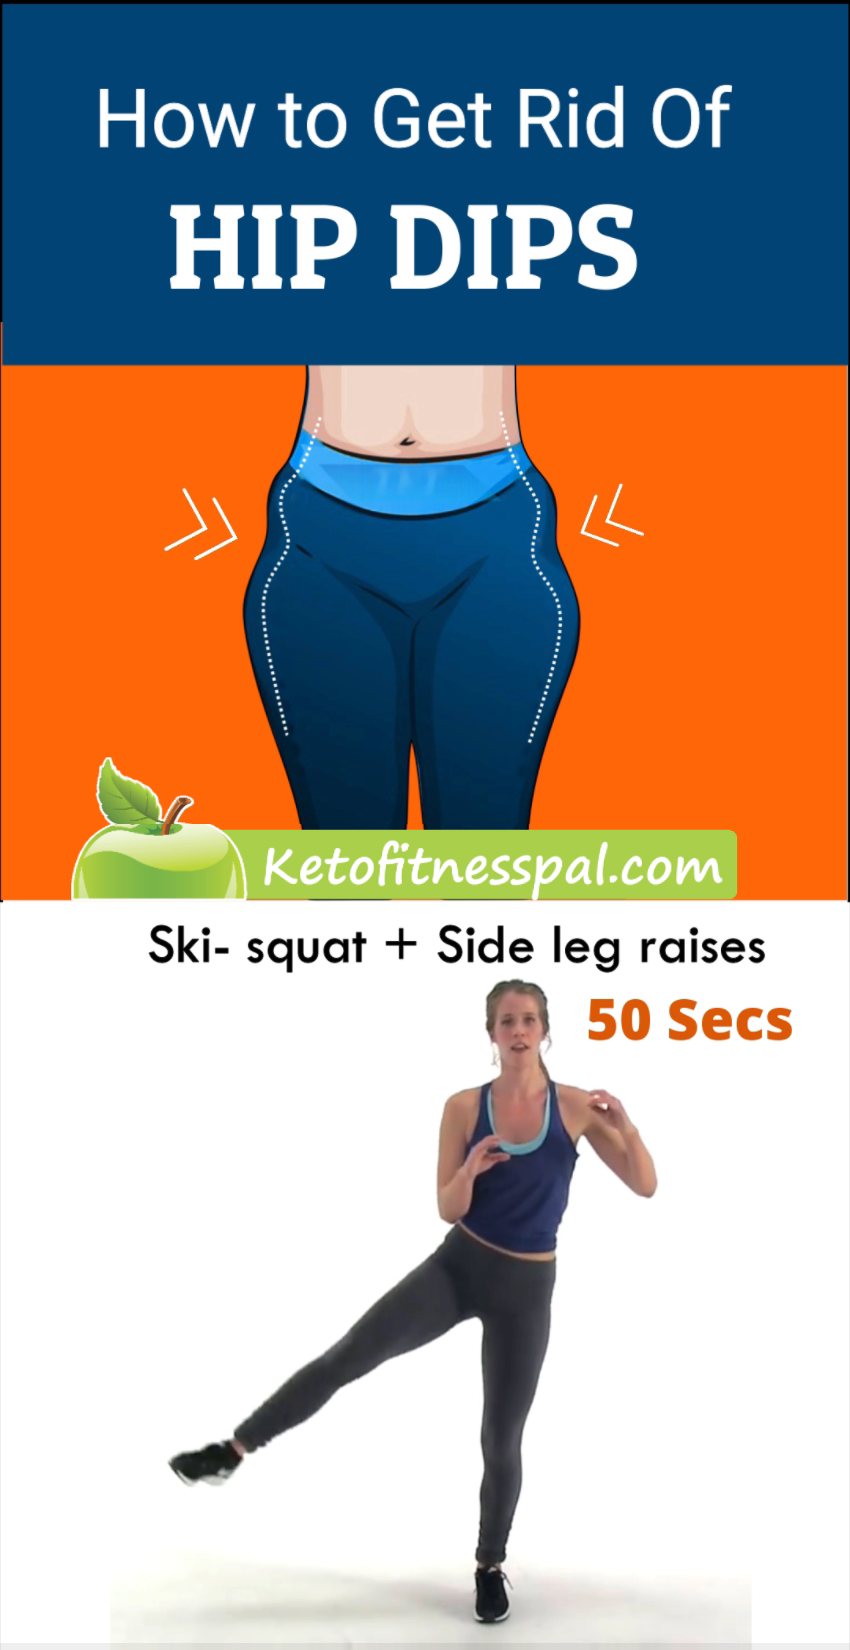 The Best Exercises for Curvy Hips - Side Glutes Workout To Reduce Hip Dips Forever